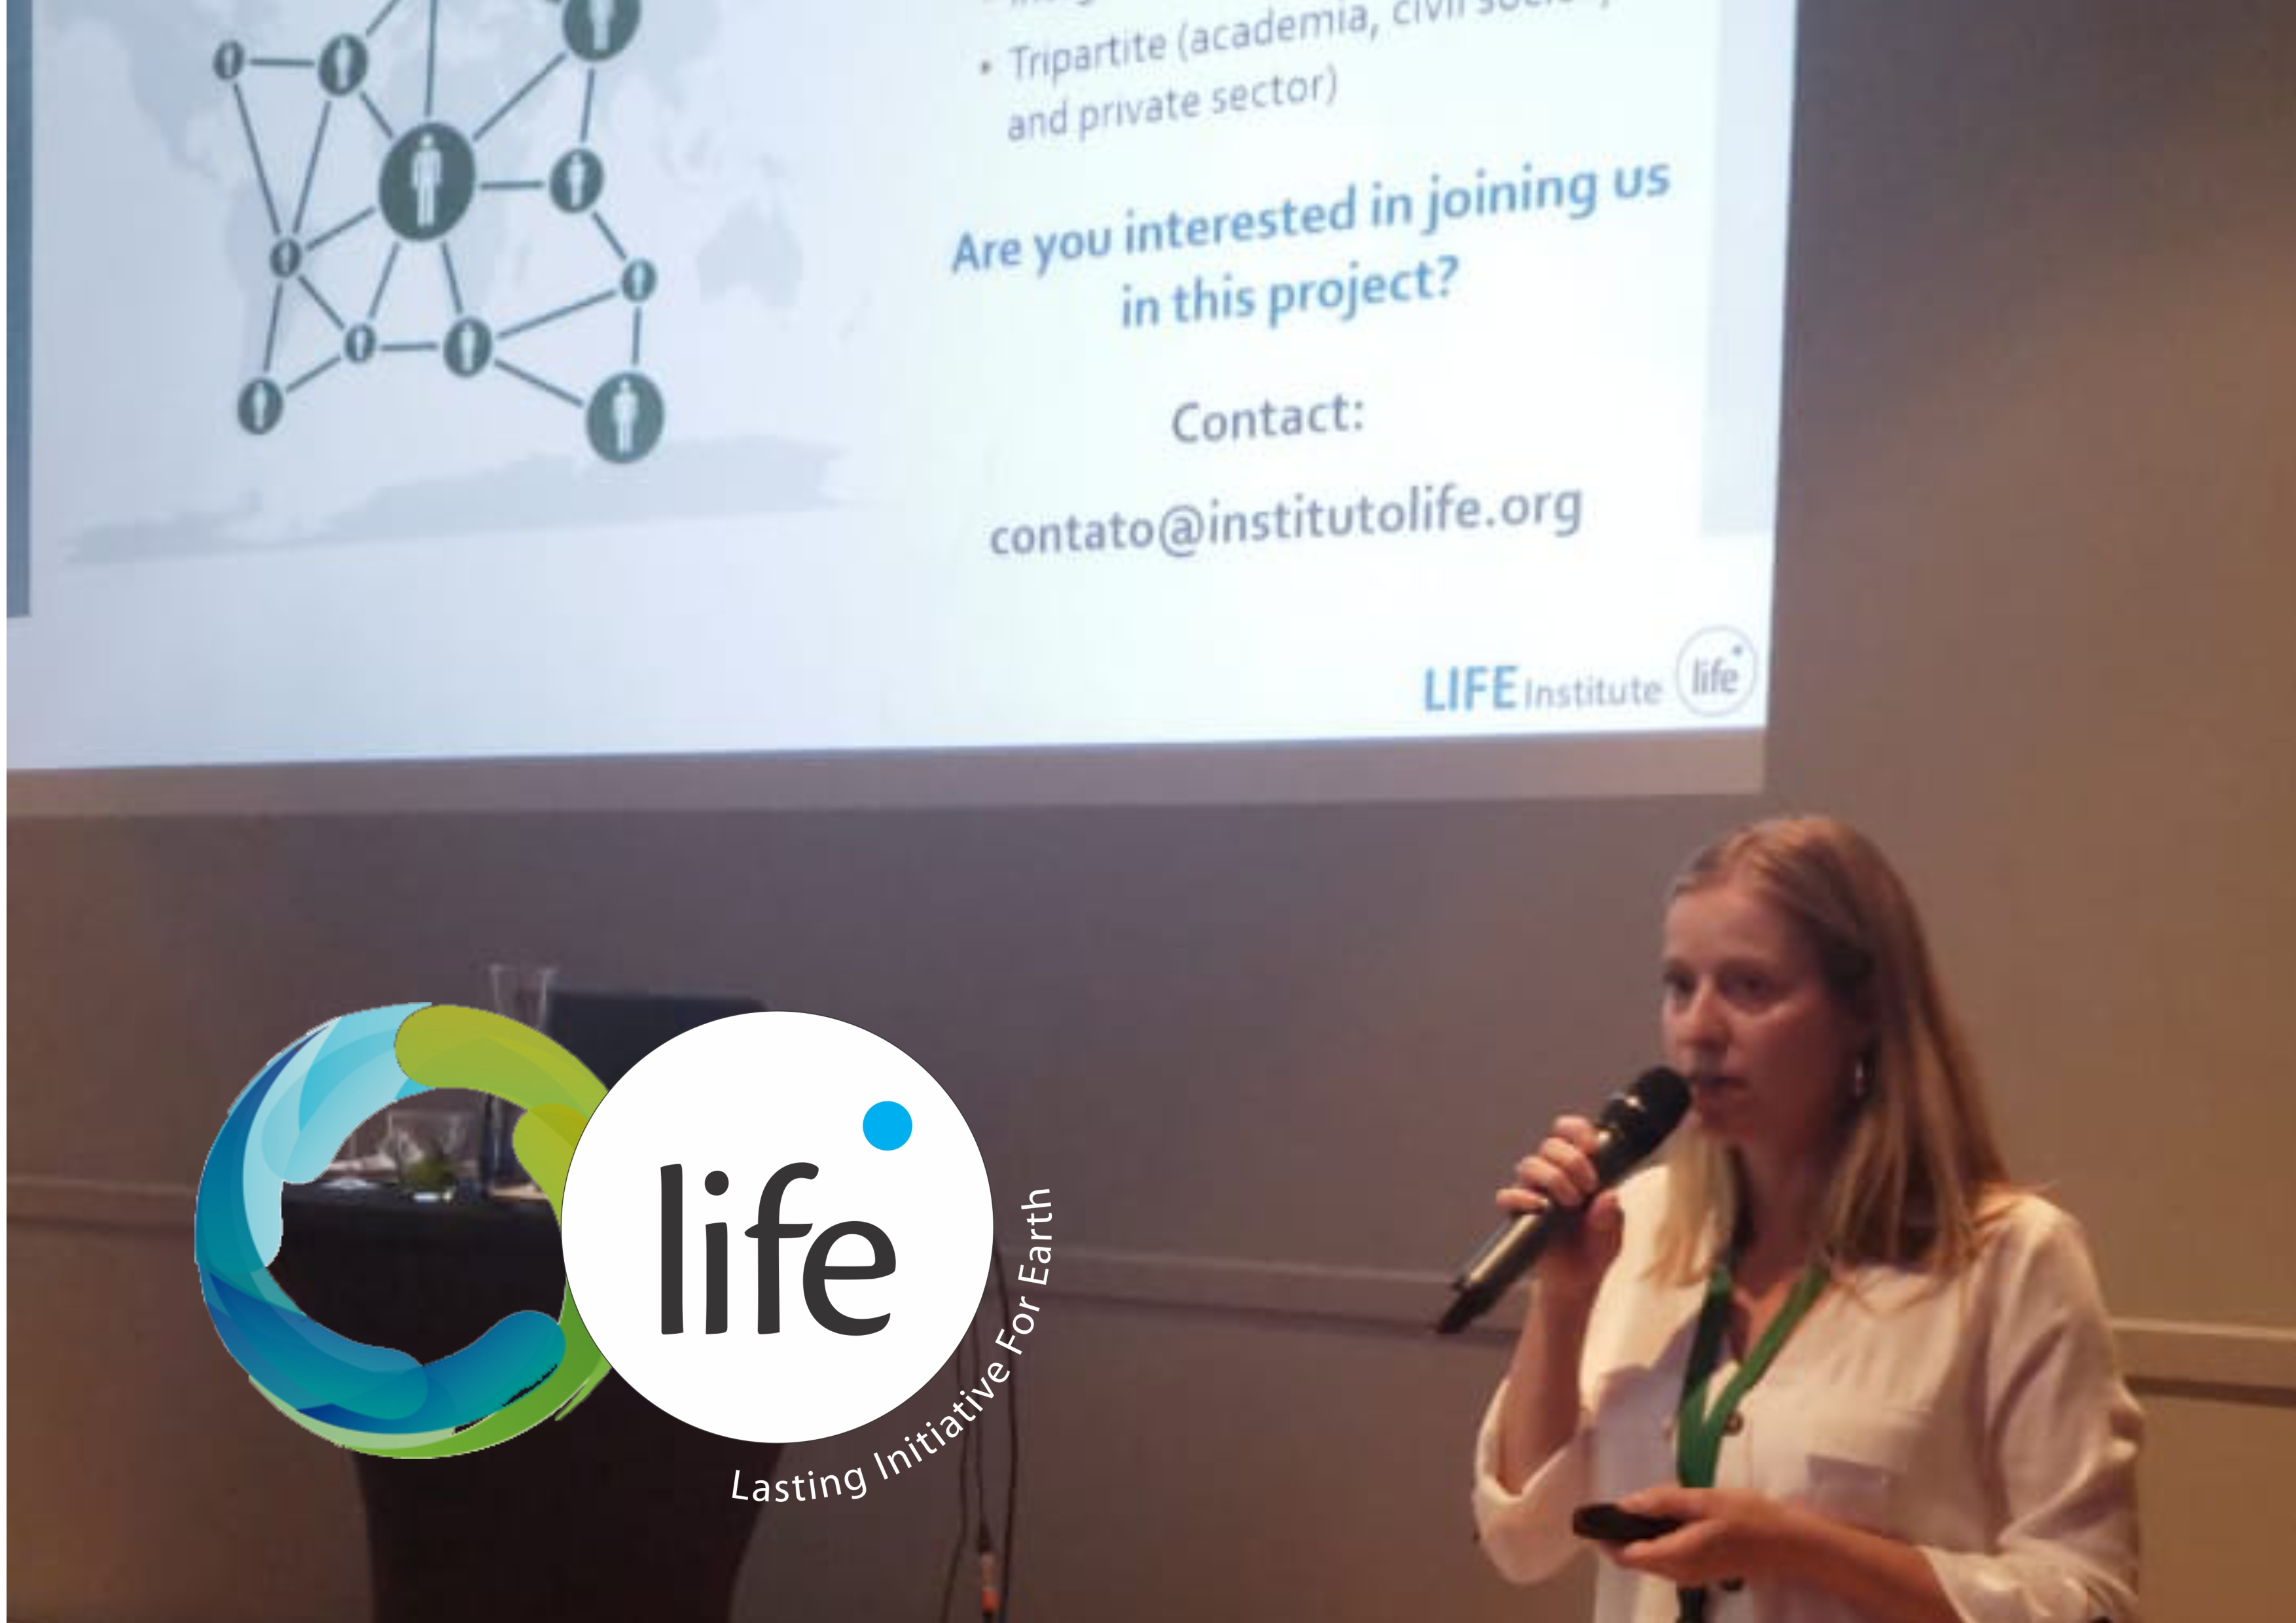 LIFE Institute presents its work during meeting of governments in Netherlands